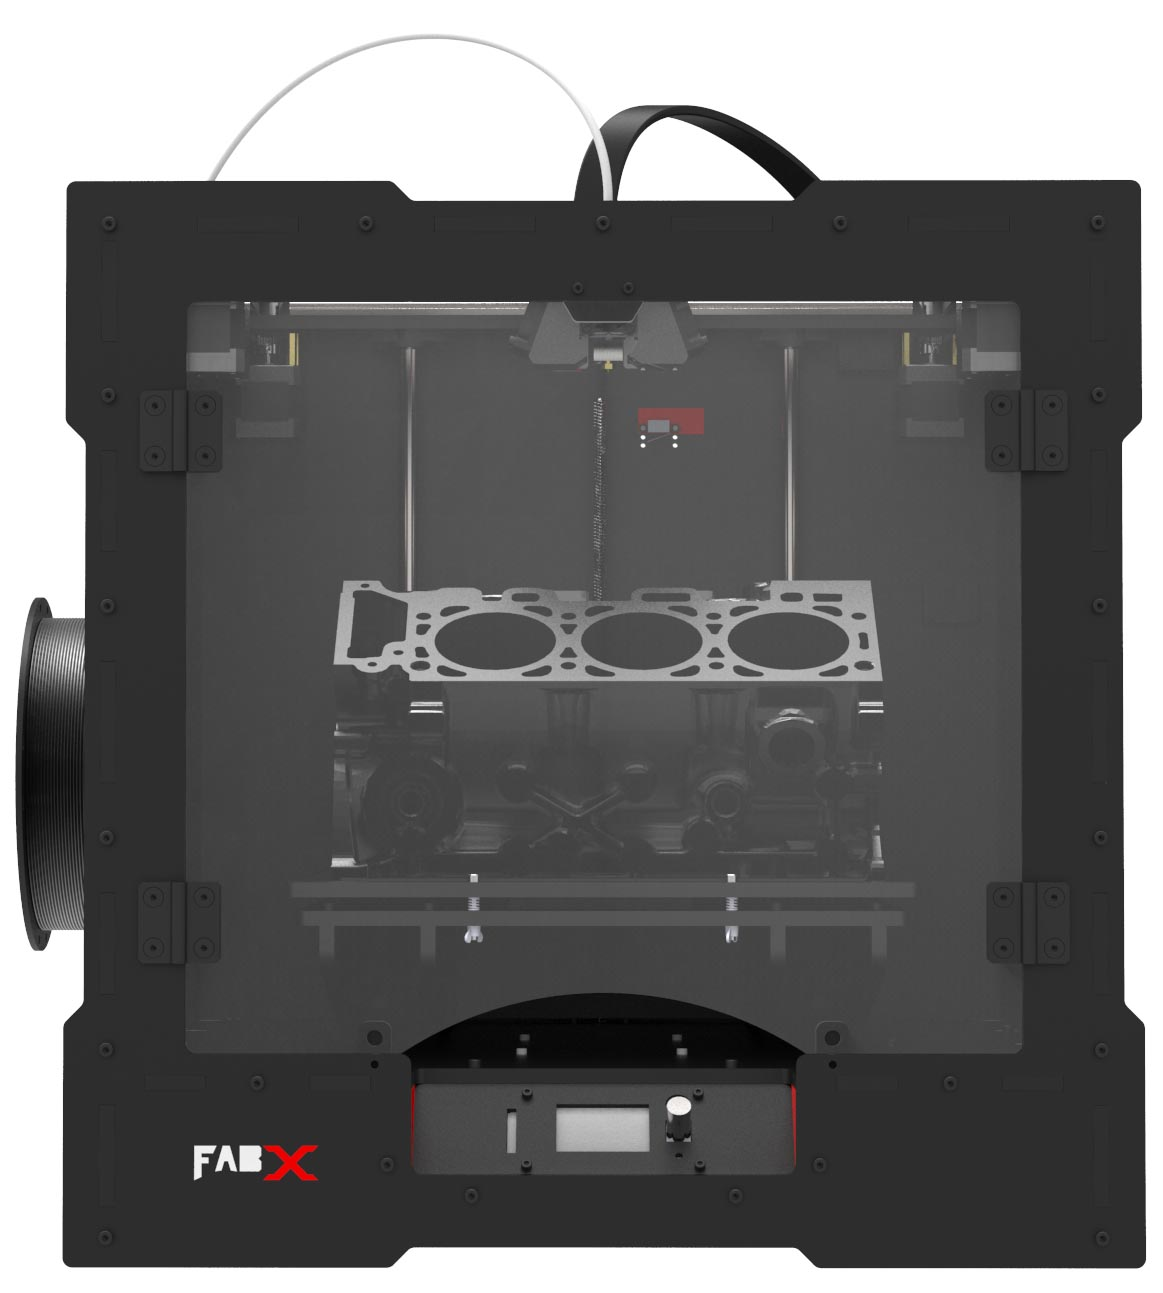 FabXL 3D Printer in Engineering